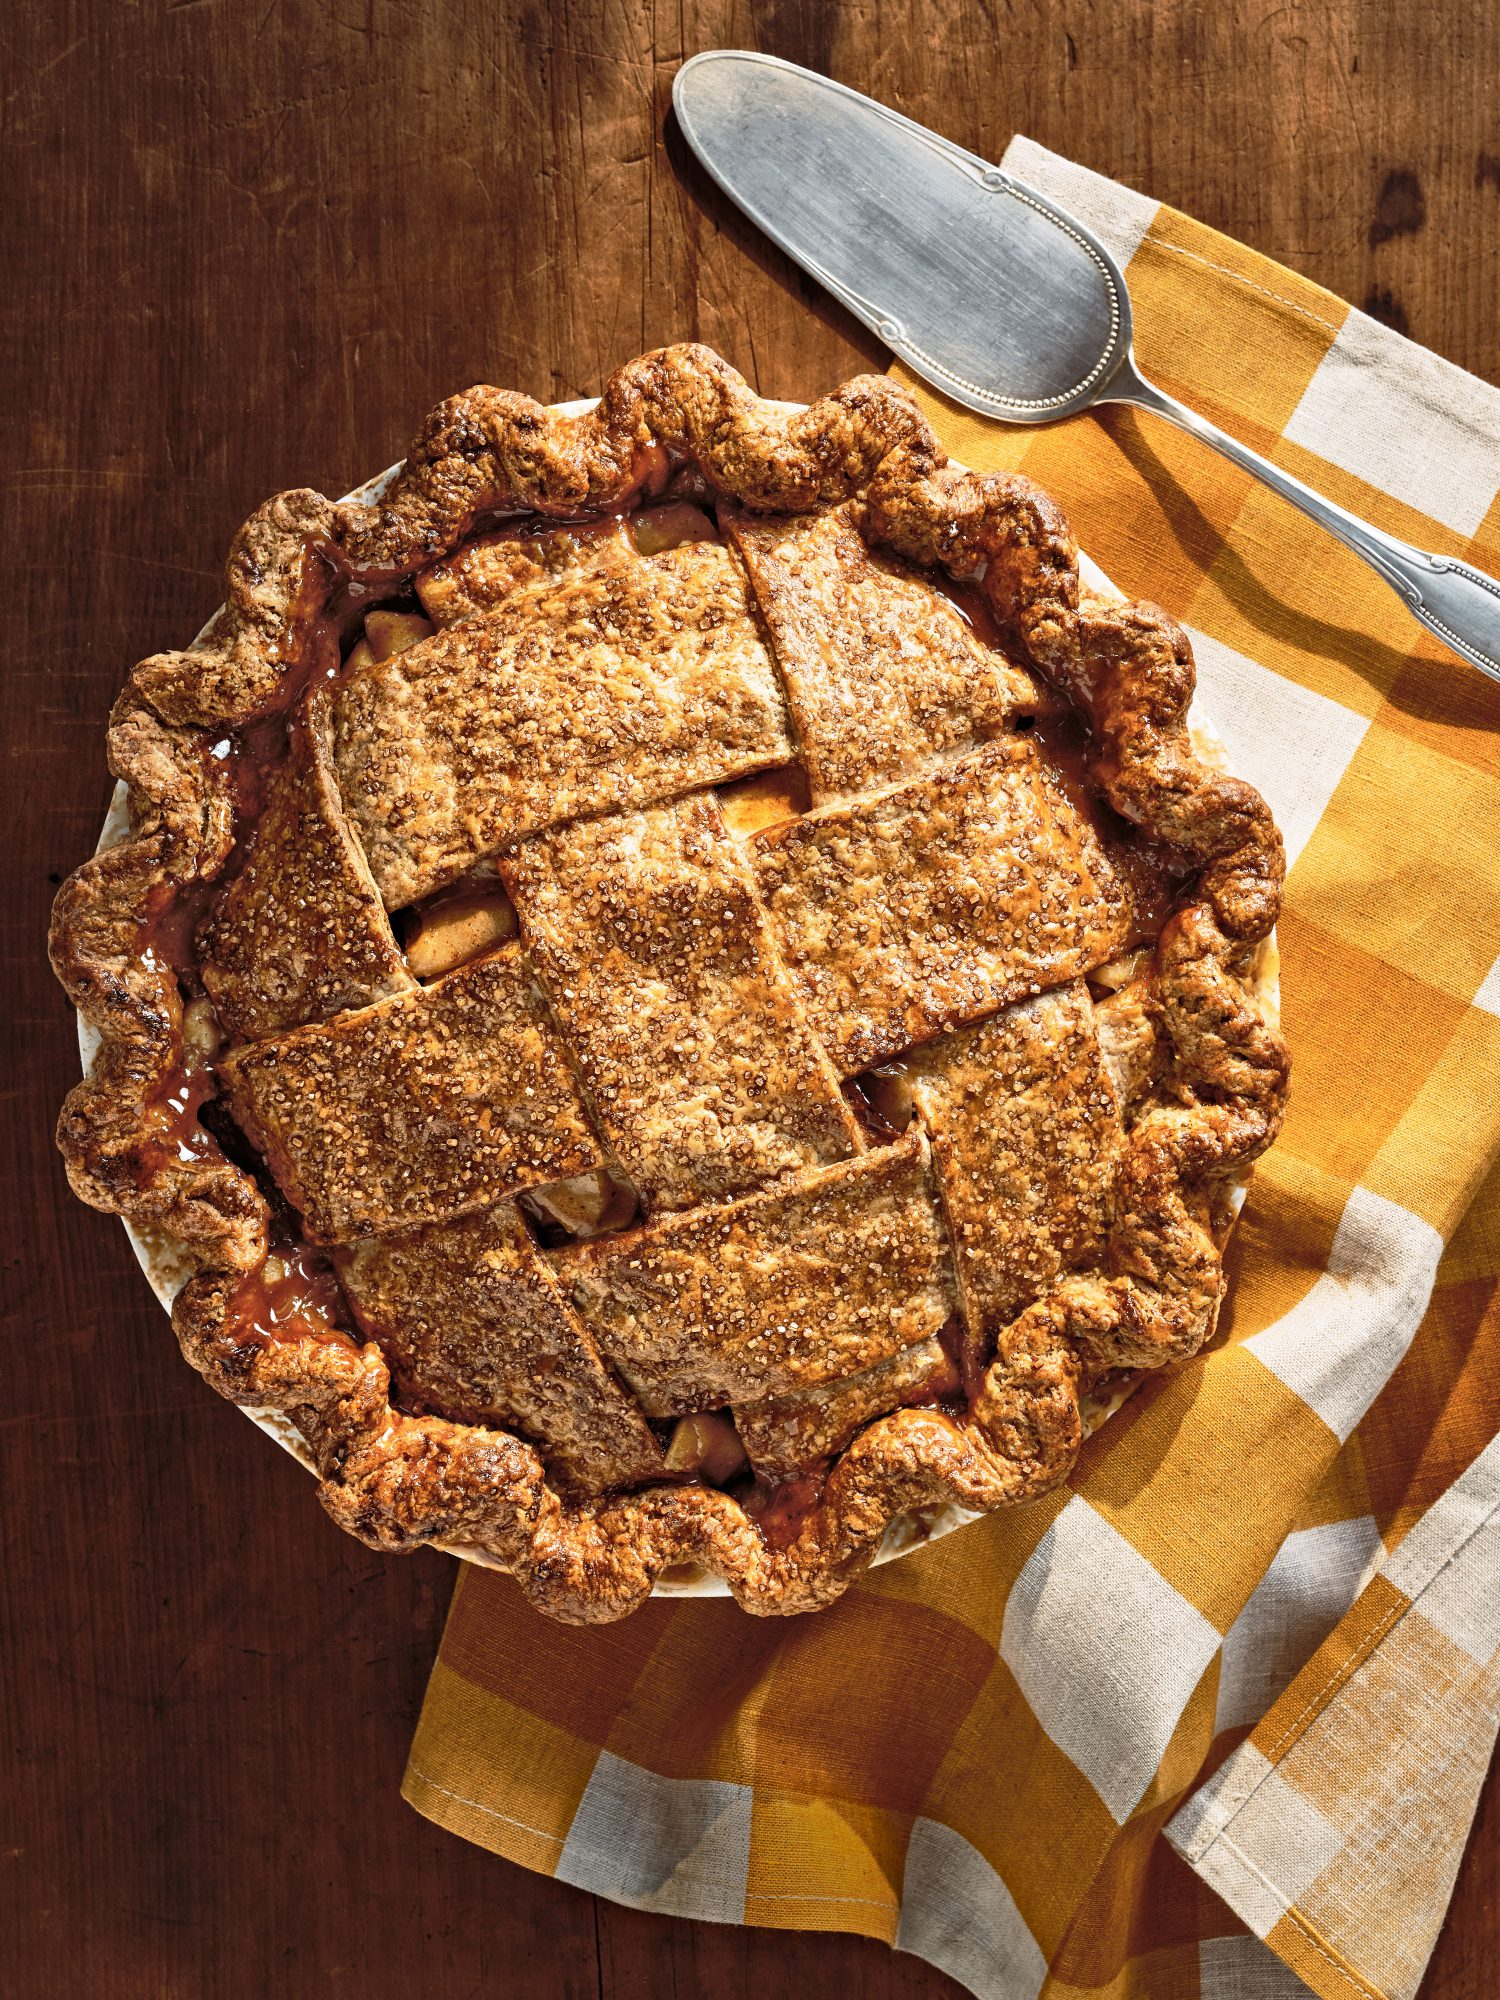 Apple Pie with Rye Crust and Cider Caramel